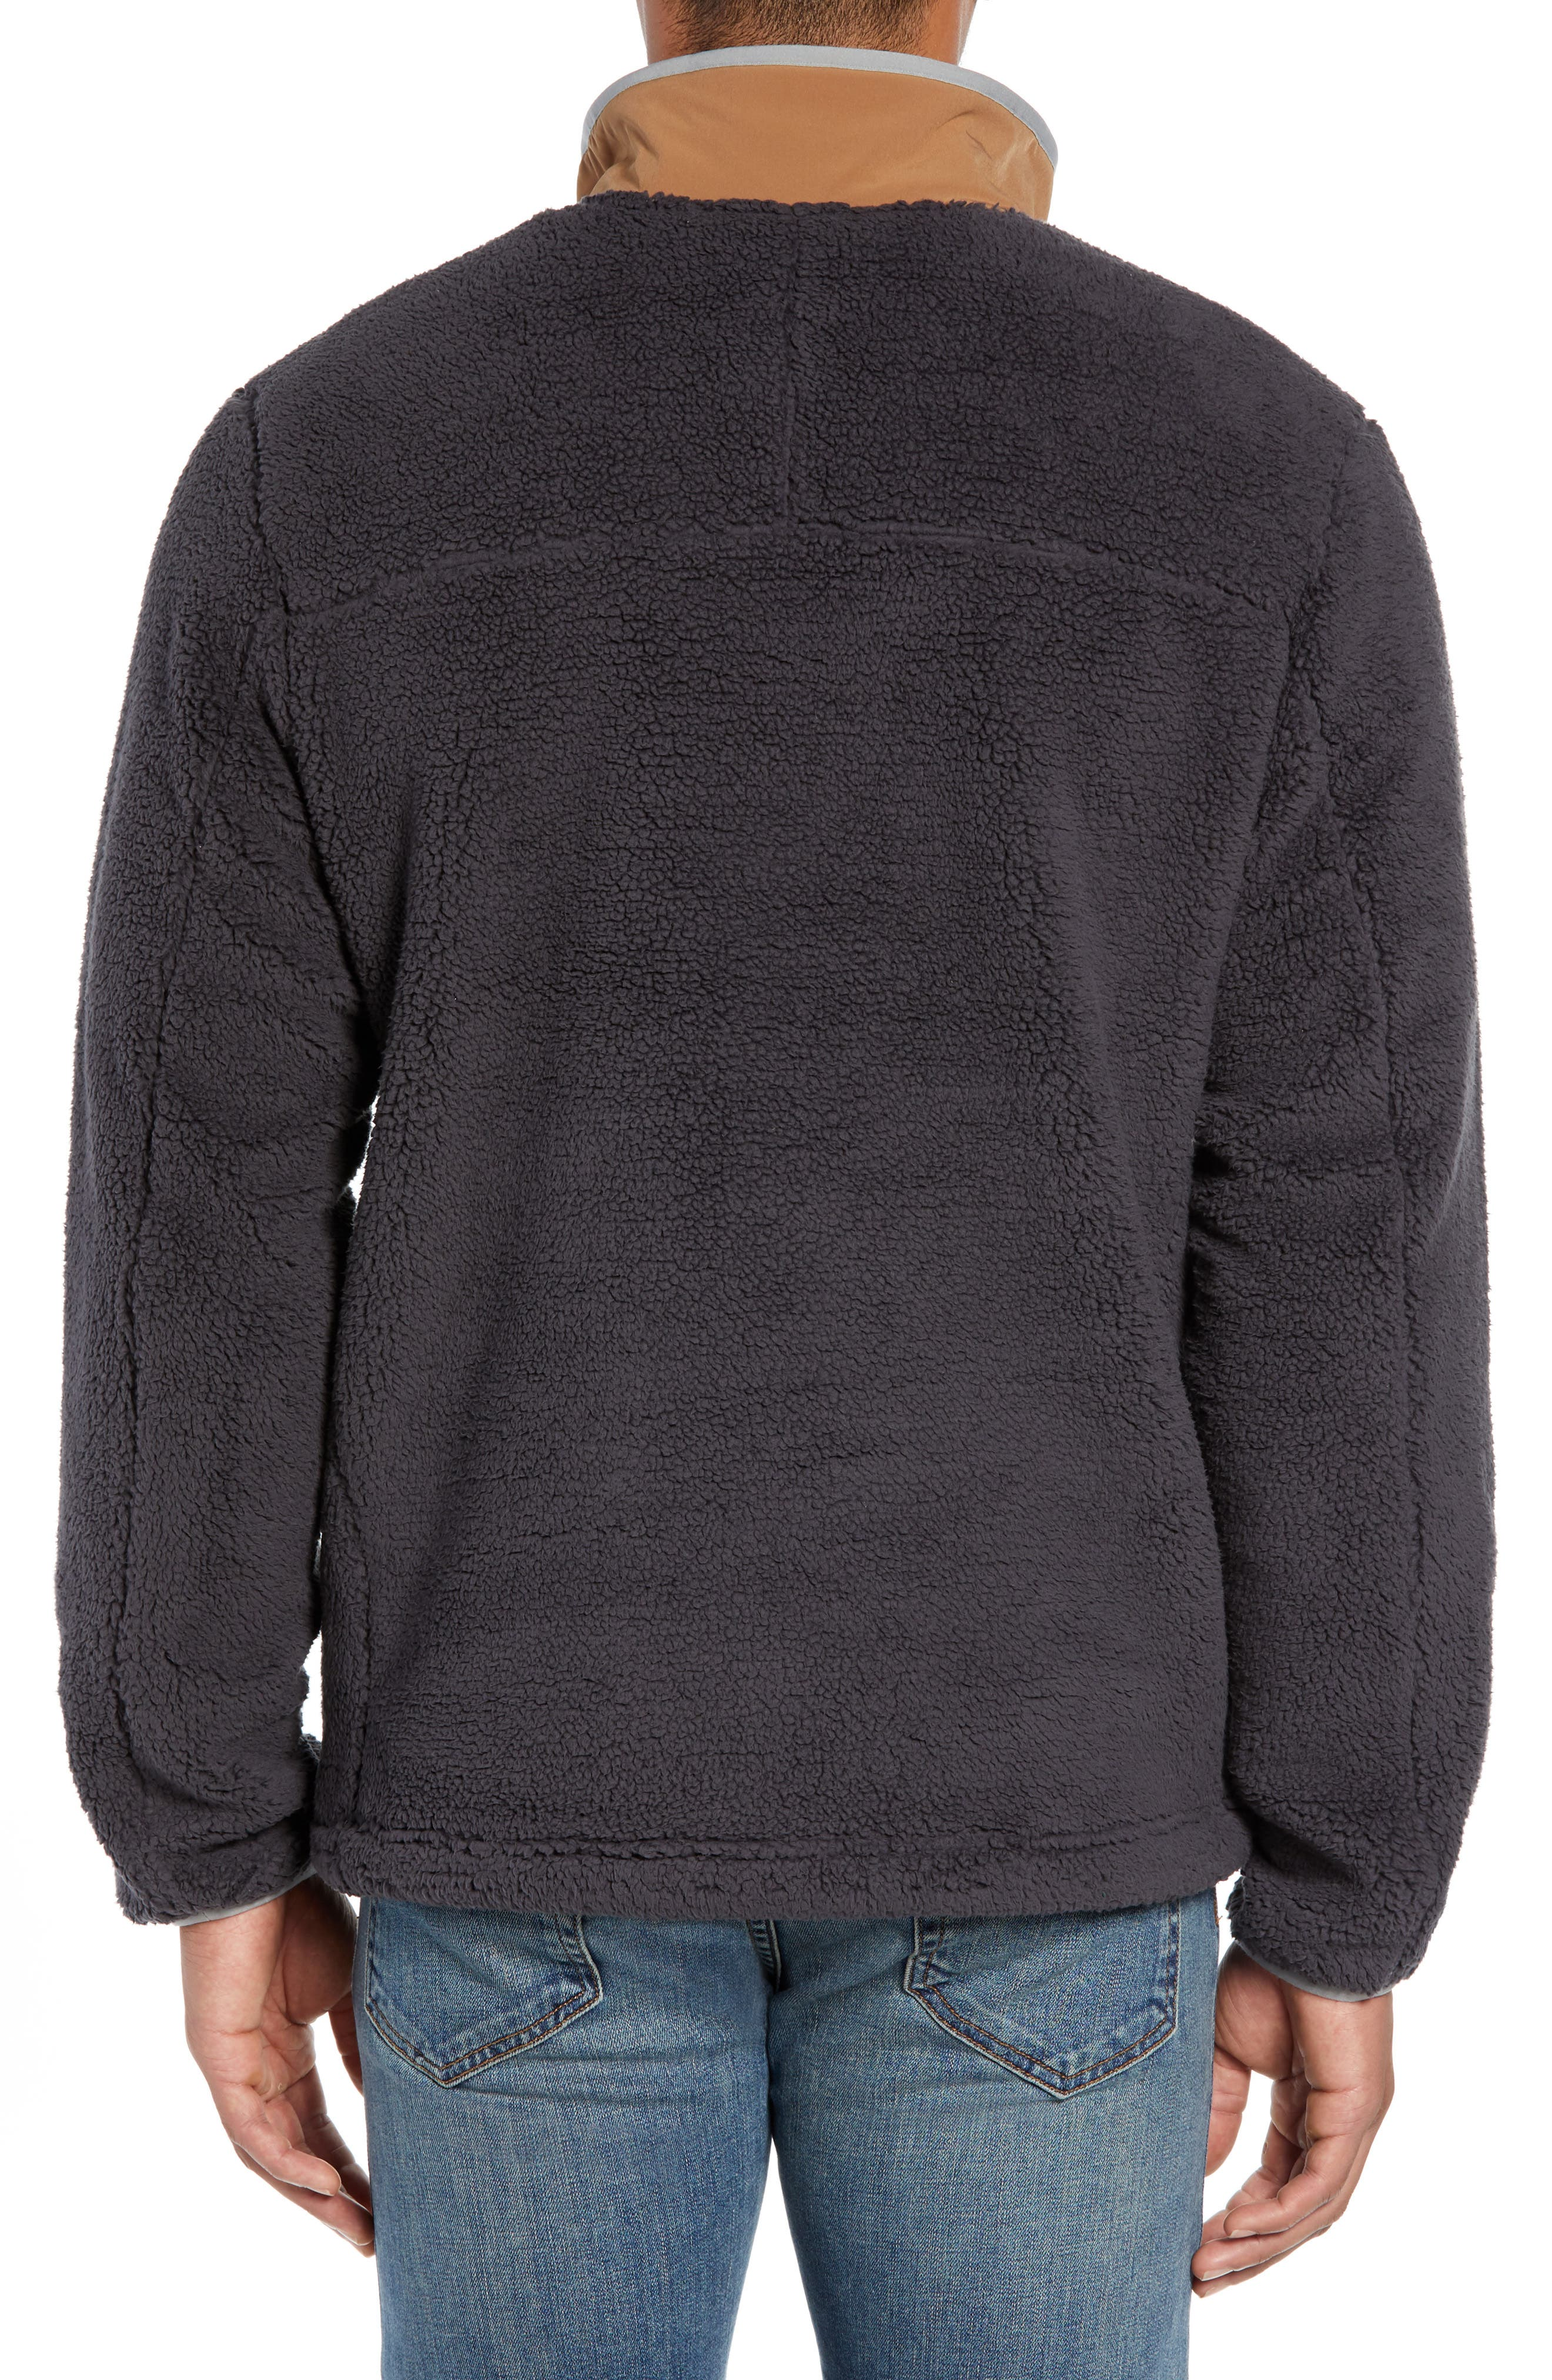 THE NORTH FACE,                             Campshire Pullover Fleece Jacket,                             Alternate thumbnail 2, color,                             001